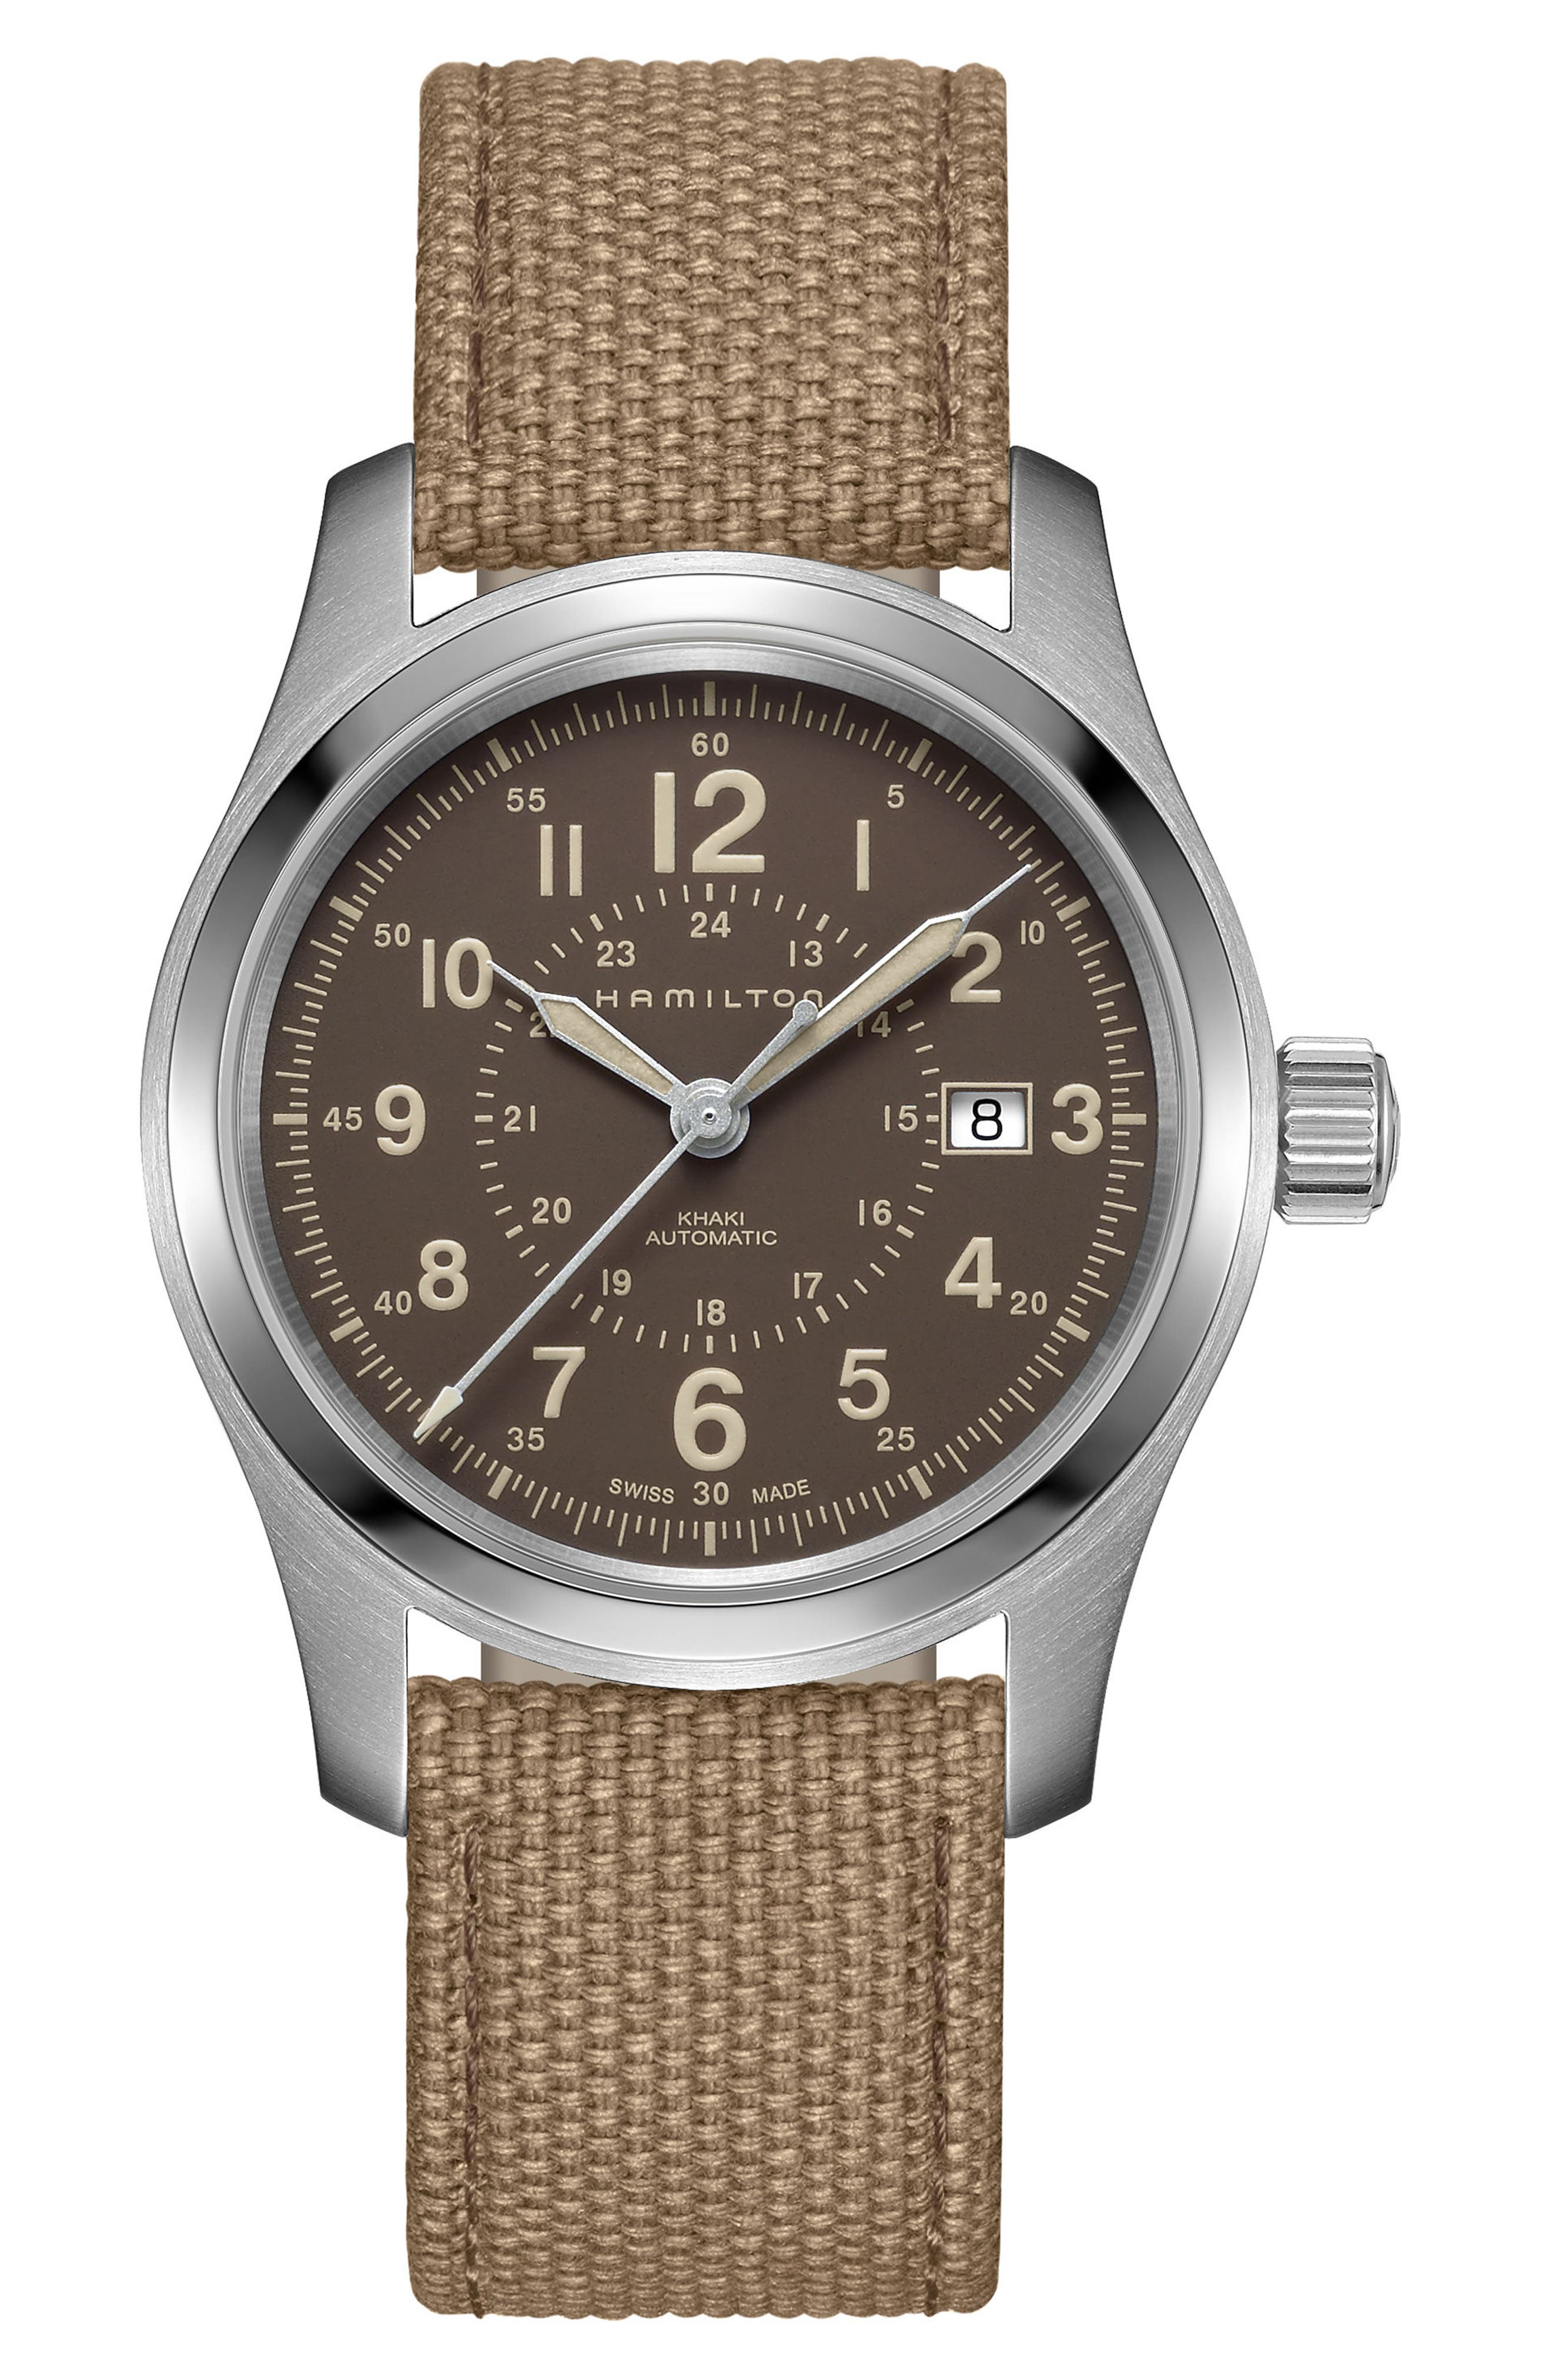 HAMILTON Khaki Field Automatic Canvas Strap Watch, 42mm